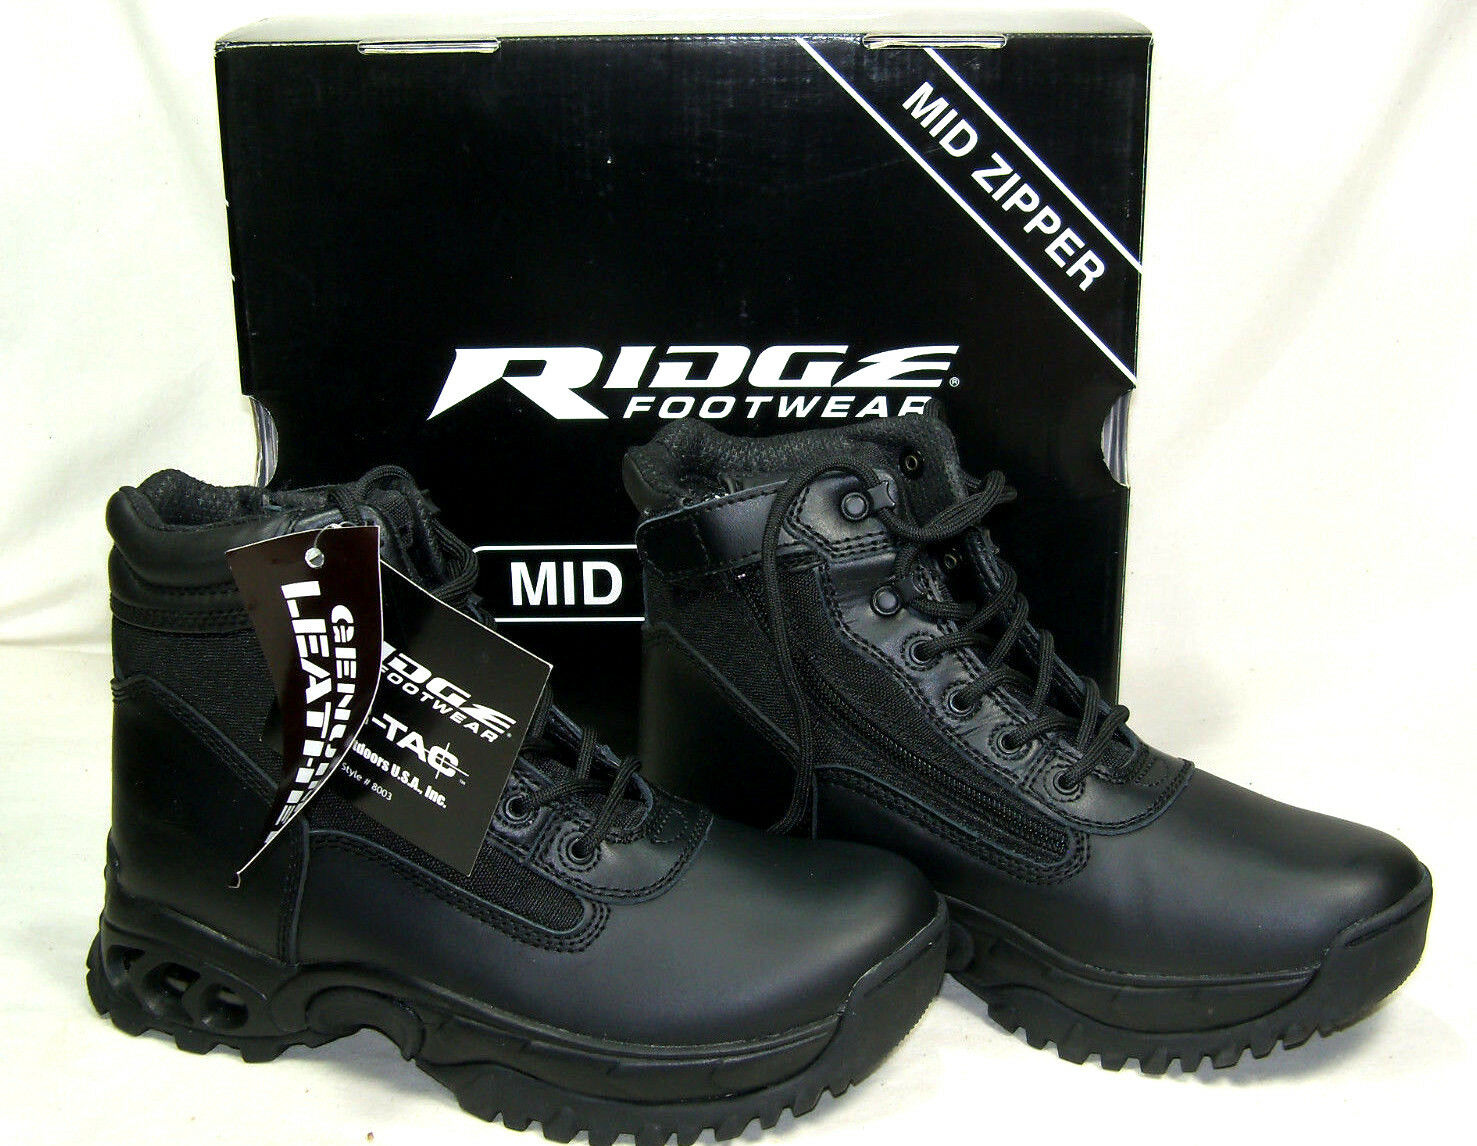 Ridge Side Zip Duty Boots for Police Military EMS - Great Motorcycle Boots